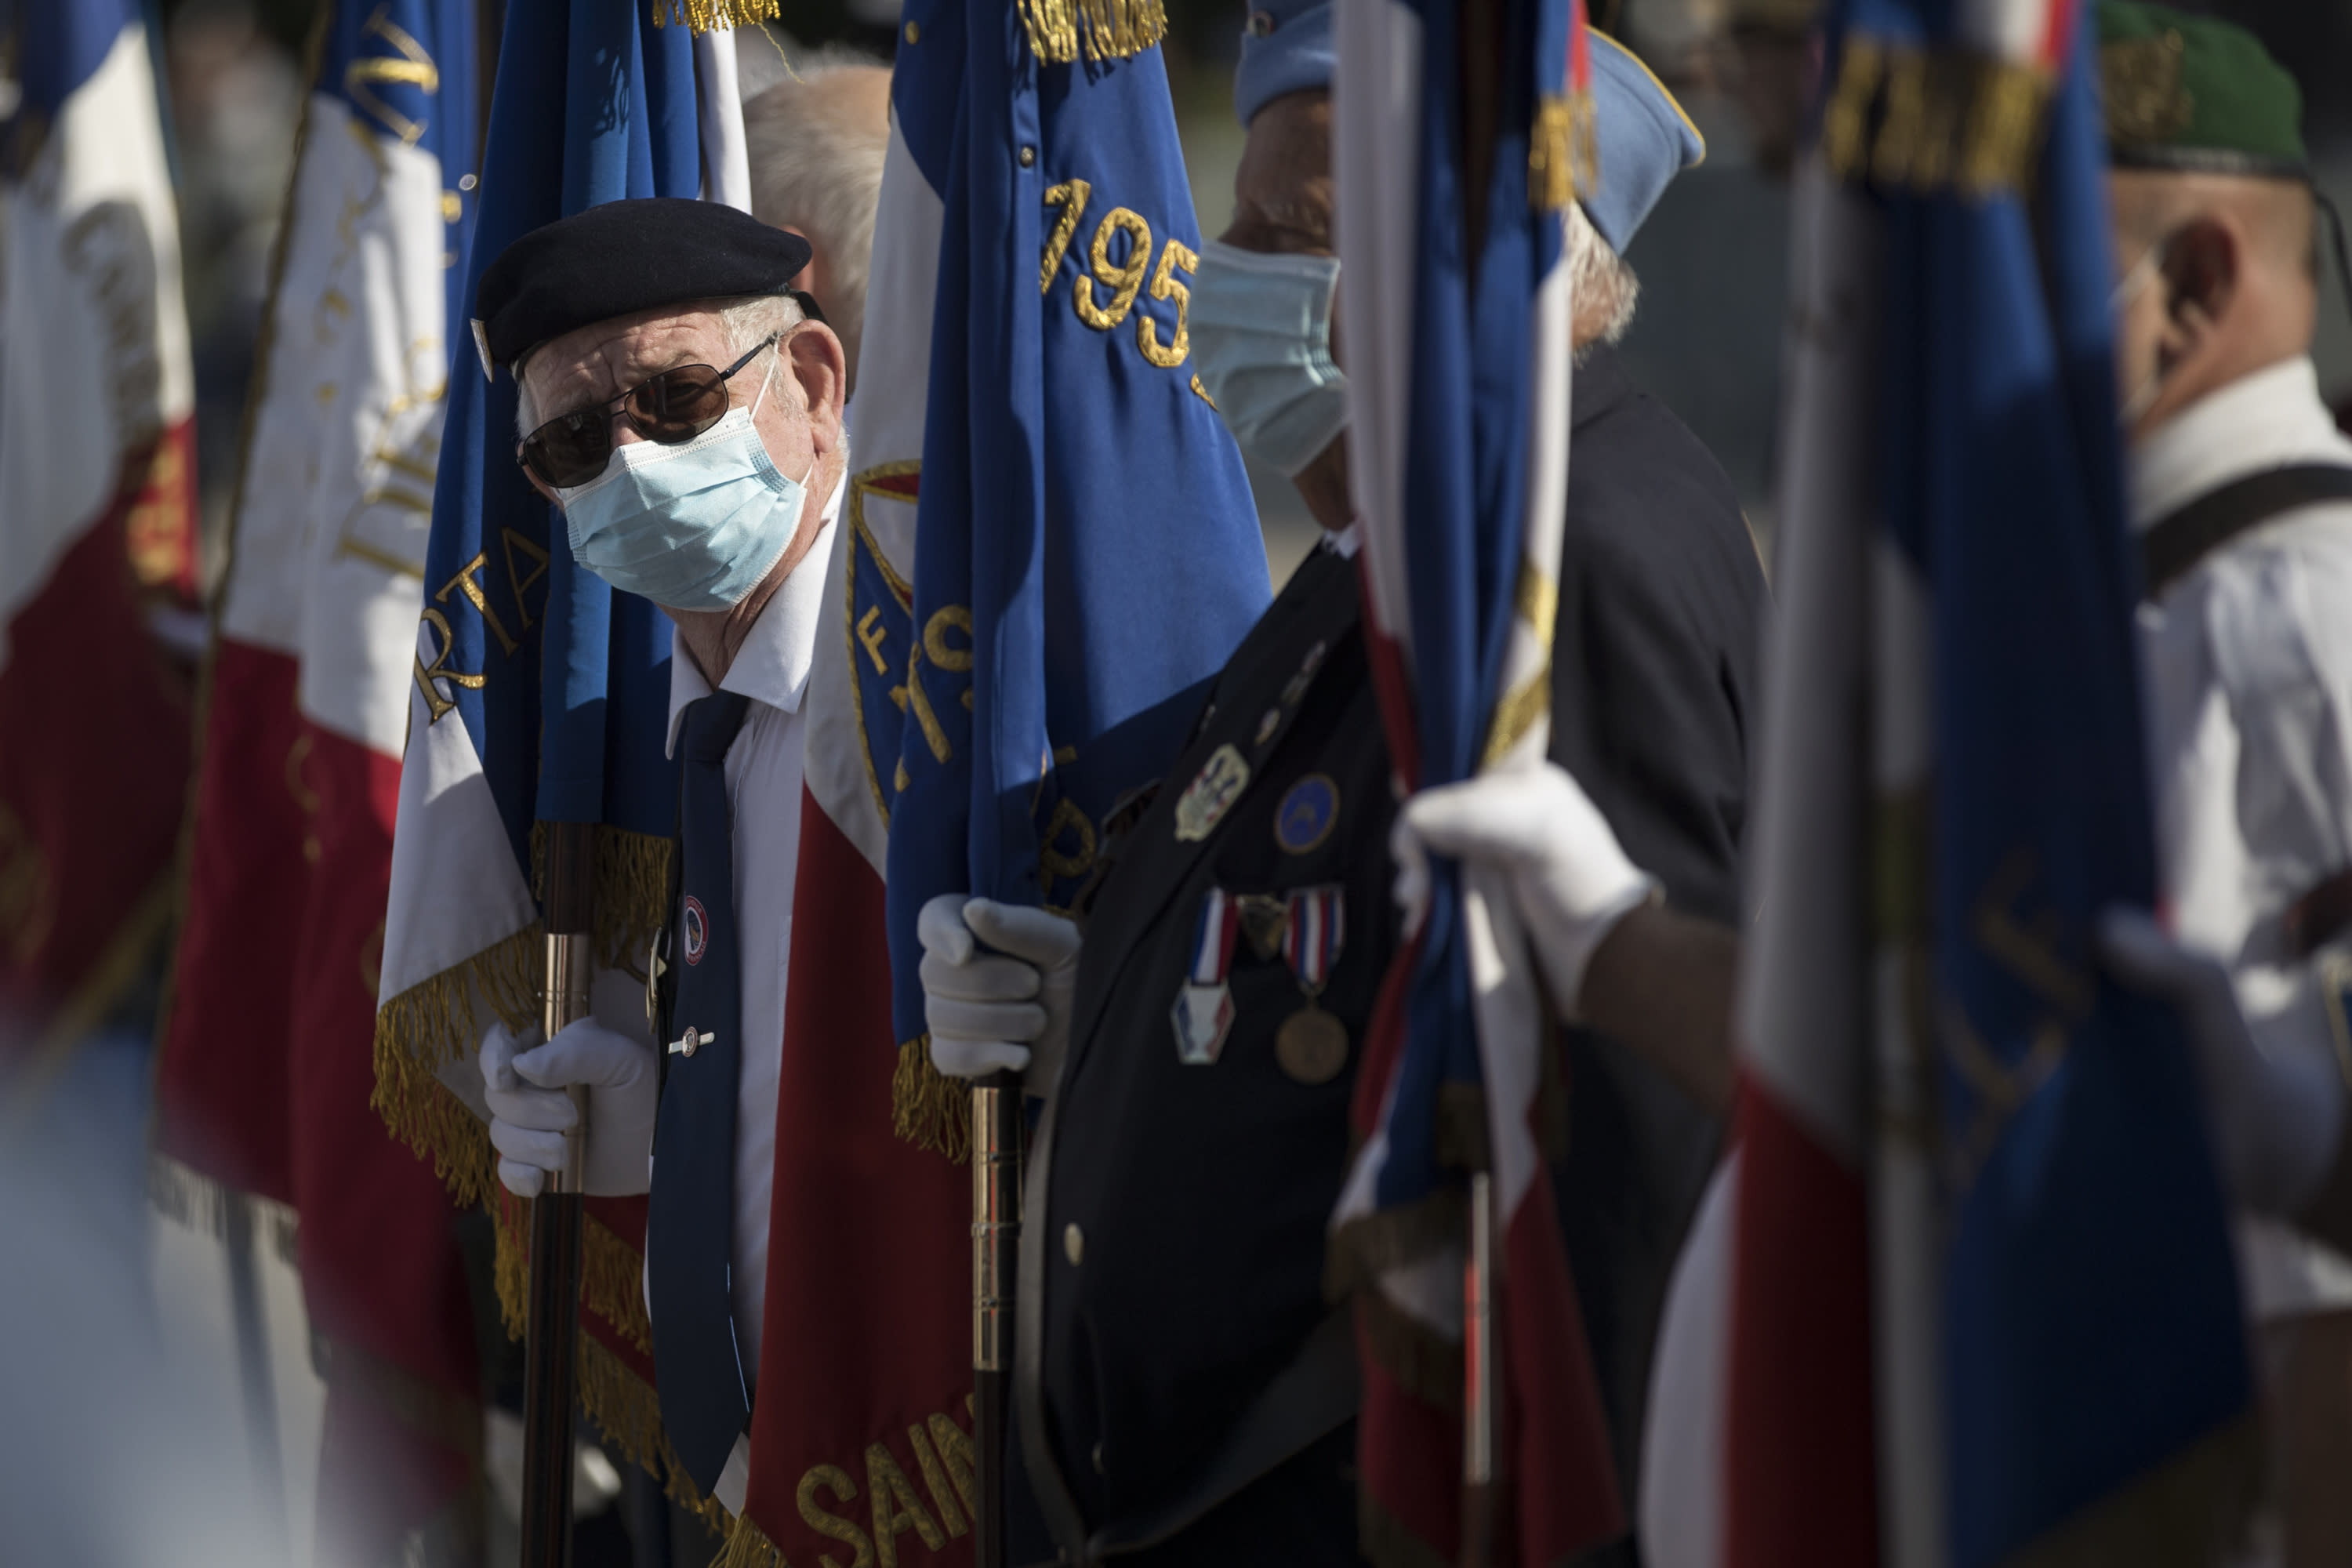 A veteran wears a face mask prior to a Bastille Day ceremony at Parc Borely, Tuesday, July 14, 2020 in Marseille, southern France. France is honoring nurses, ambulance drivers, supermarket cashiers and others on its biggest national holiday Tuesday. Bastille Day's usual grandiose military parade in Paris is being redesigned this year to celebrate heroes of the coronavirus pandemic. (AP Photo/Daniel Cole)